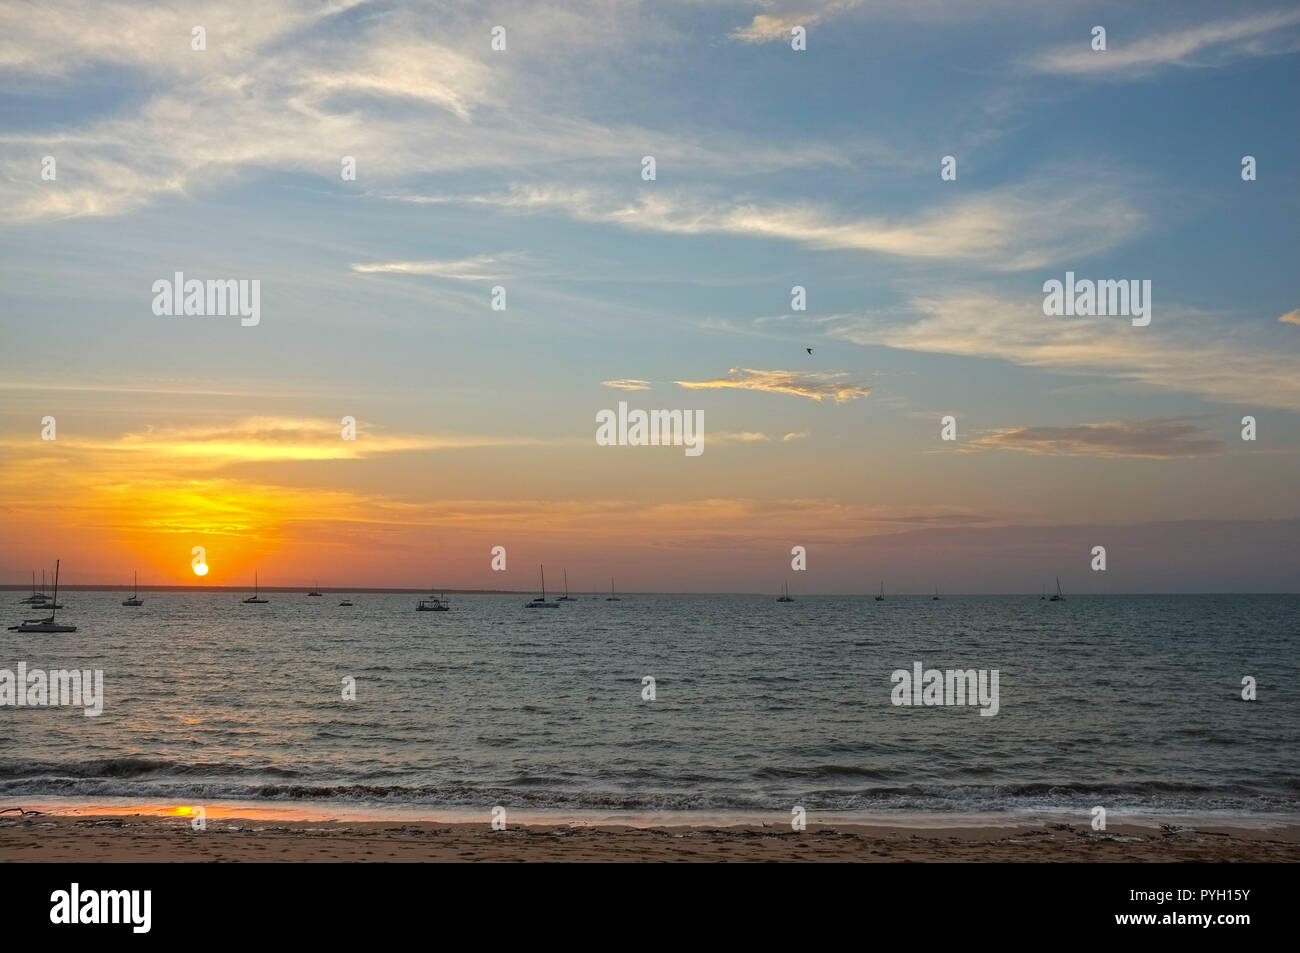 vesteys-beach-at-sunset-in-darwin-northe